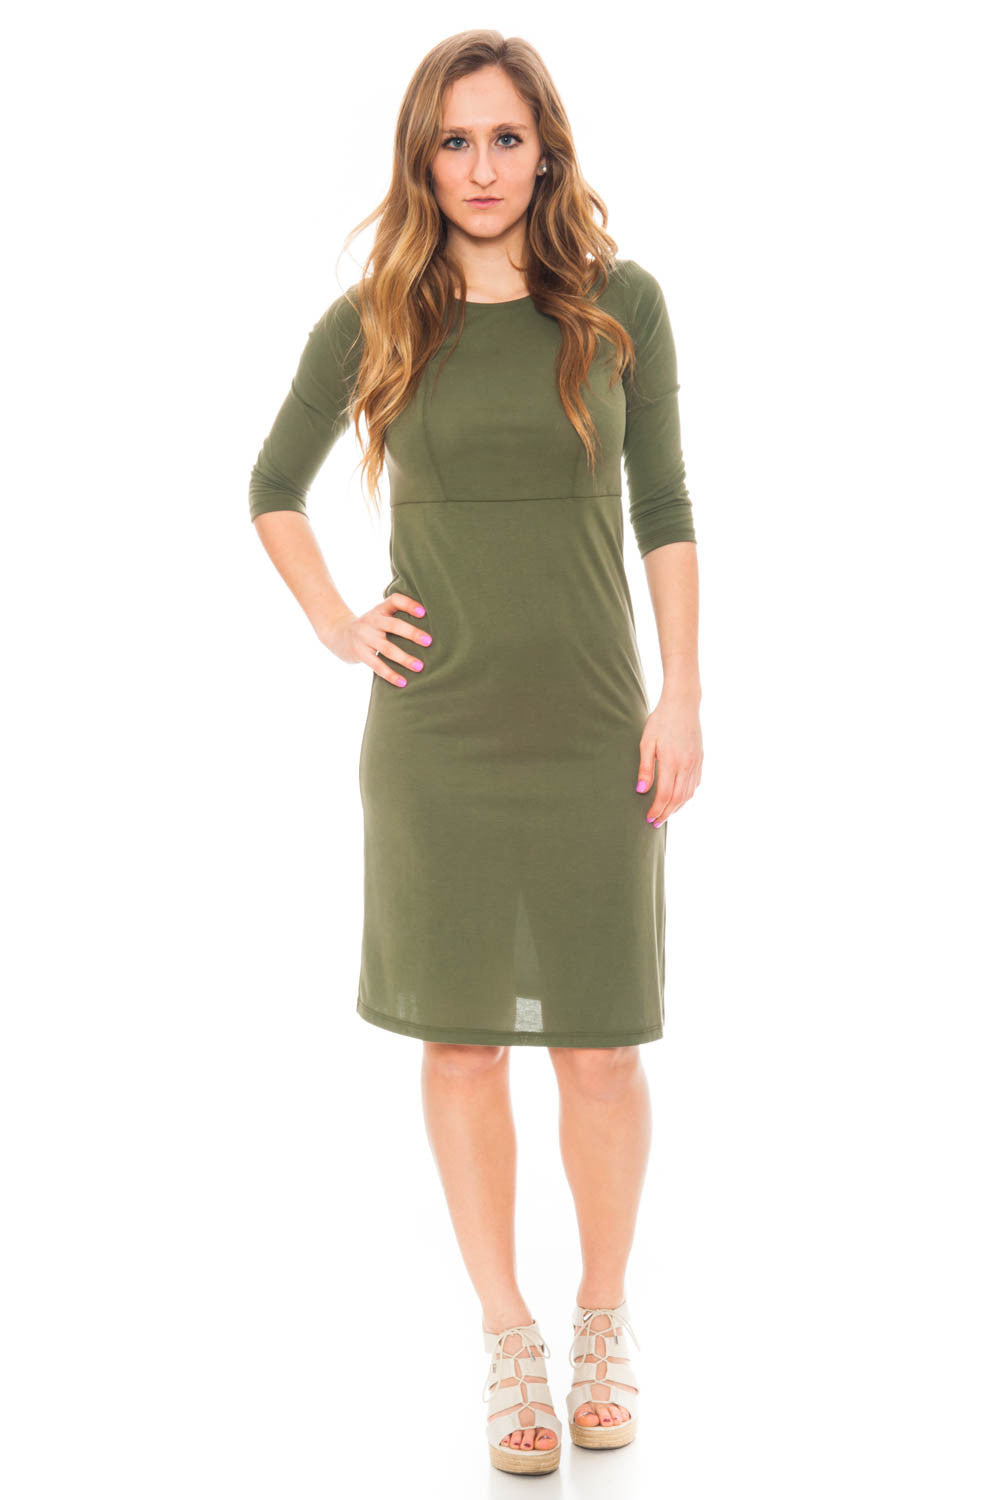 Dress - Cupro By Everly dress with shoulder cut outs